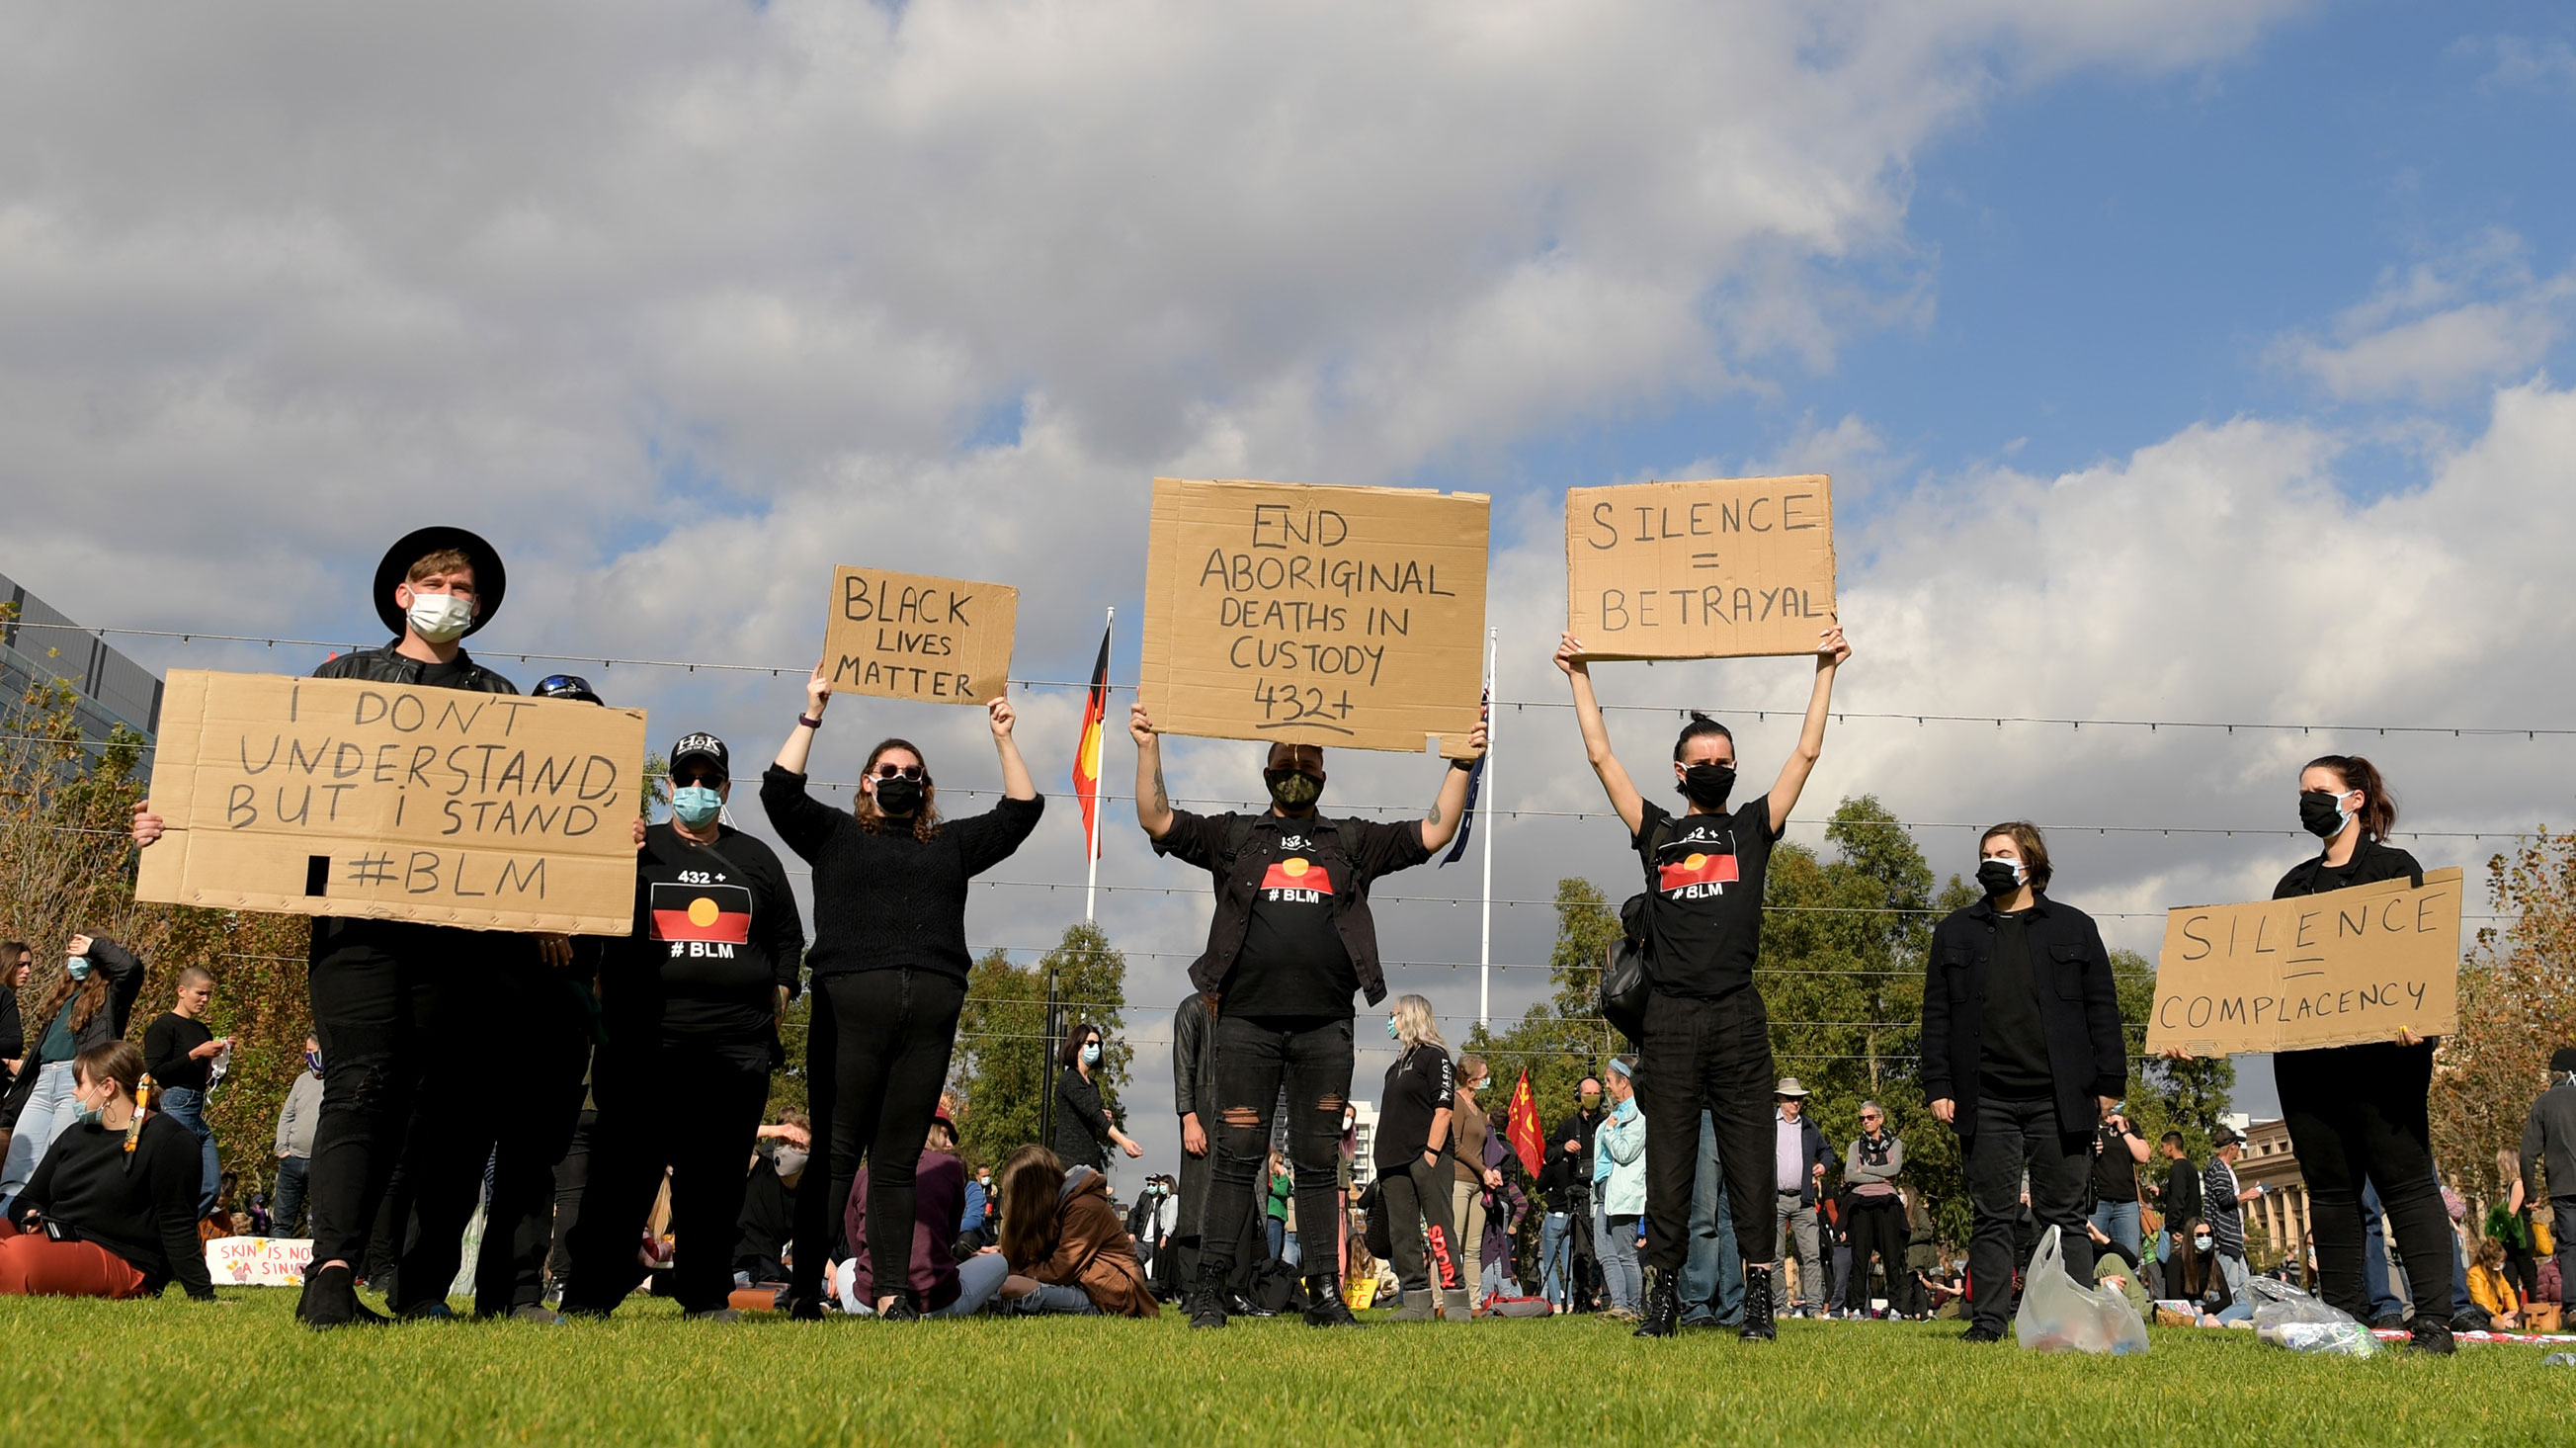 Protesters gather to show solidarity with Black Lives Matter protests in the United States on June 6 in Adelaide, Australia.